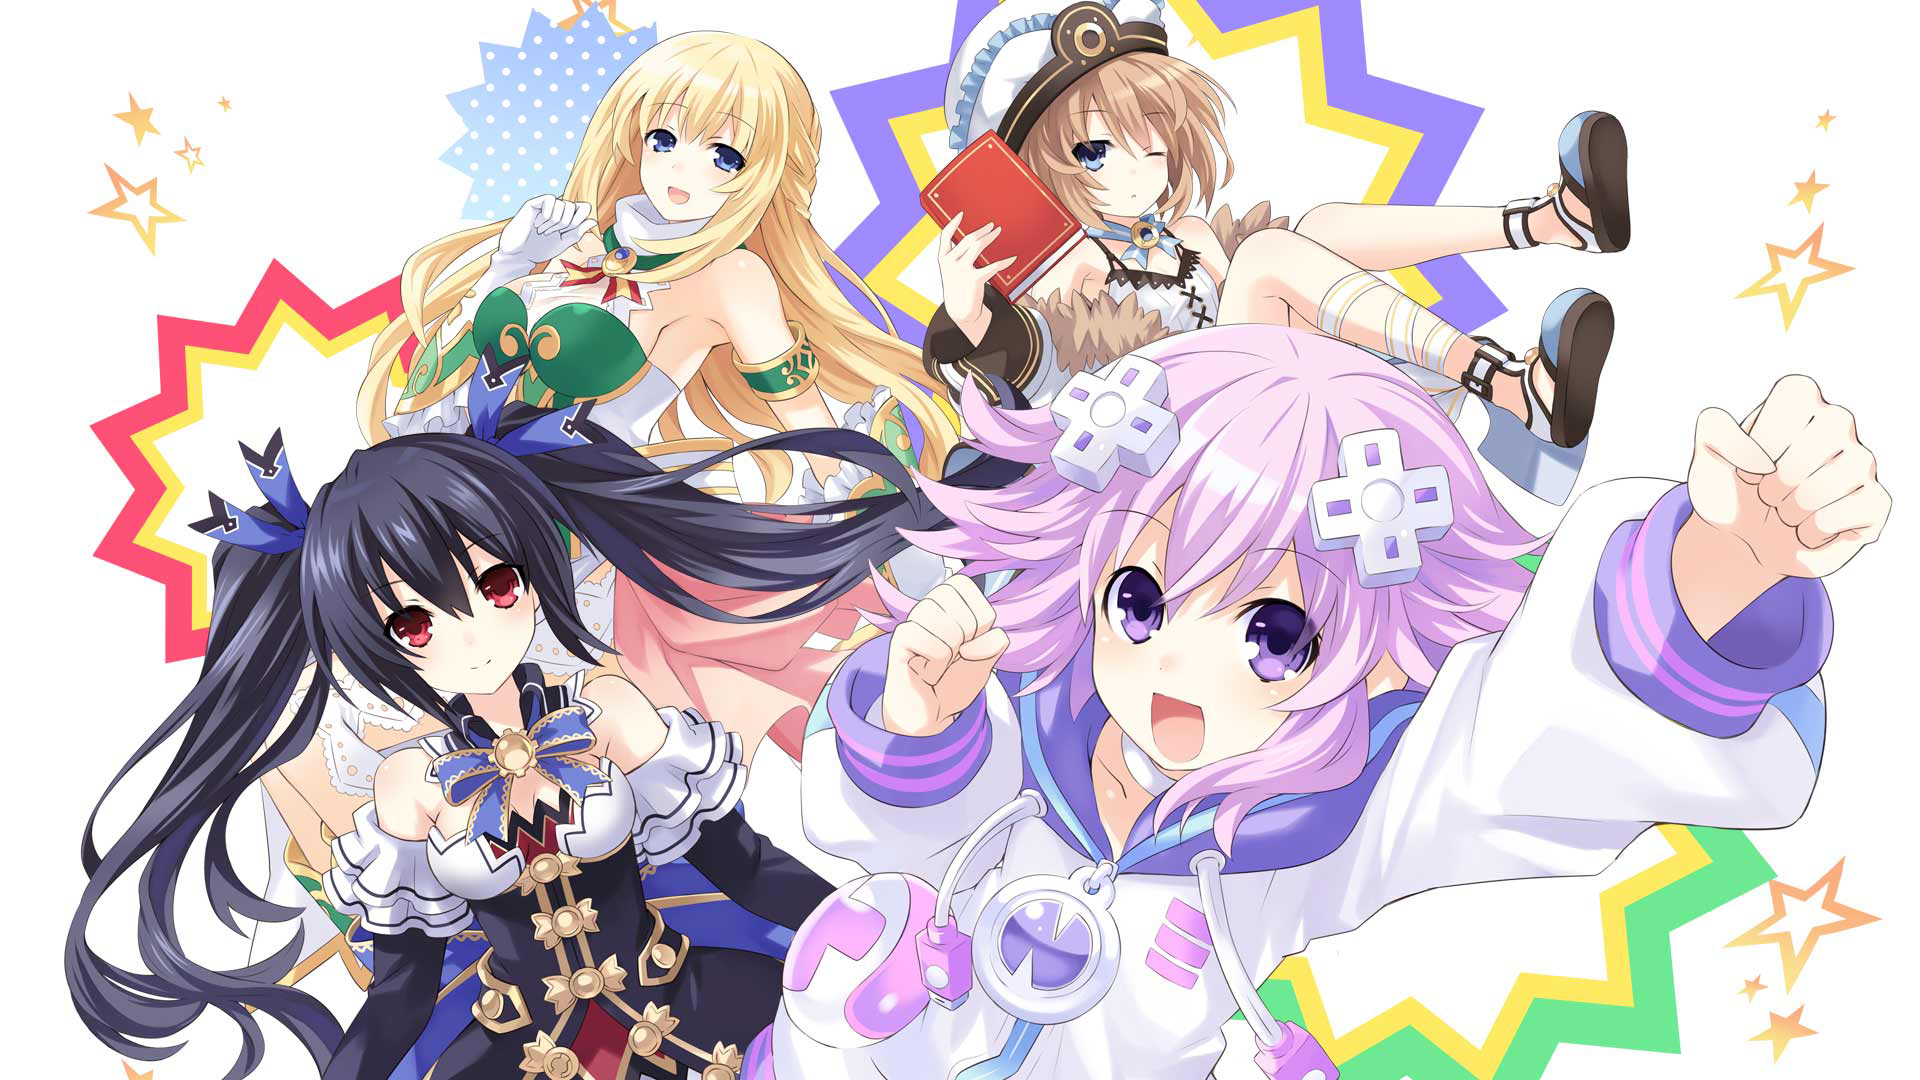 Hyperdimension Neptunia U: Action Unleashed Wallpaper 001 – 4 CPUs